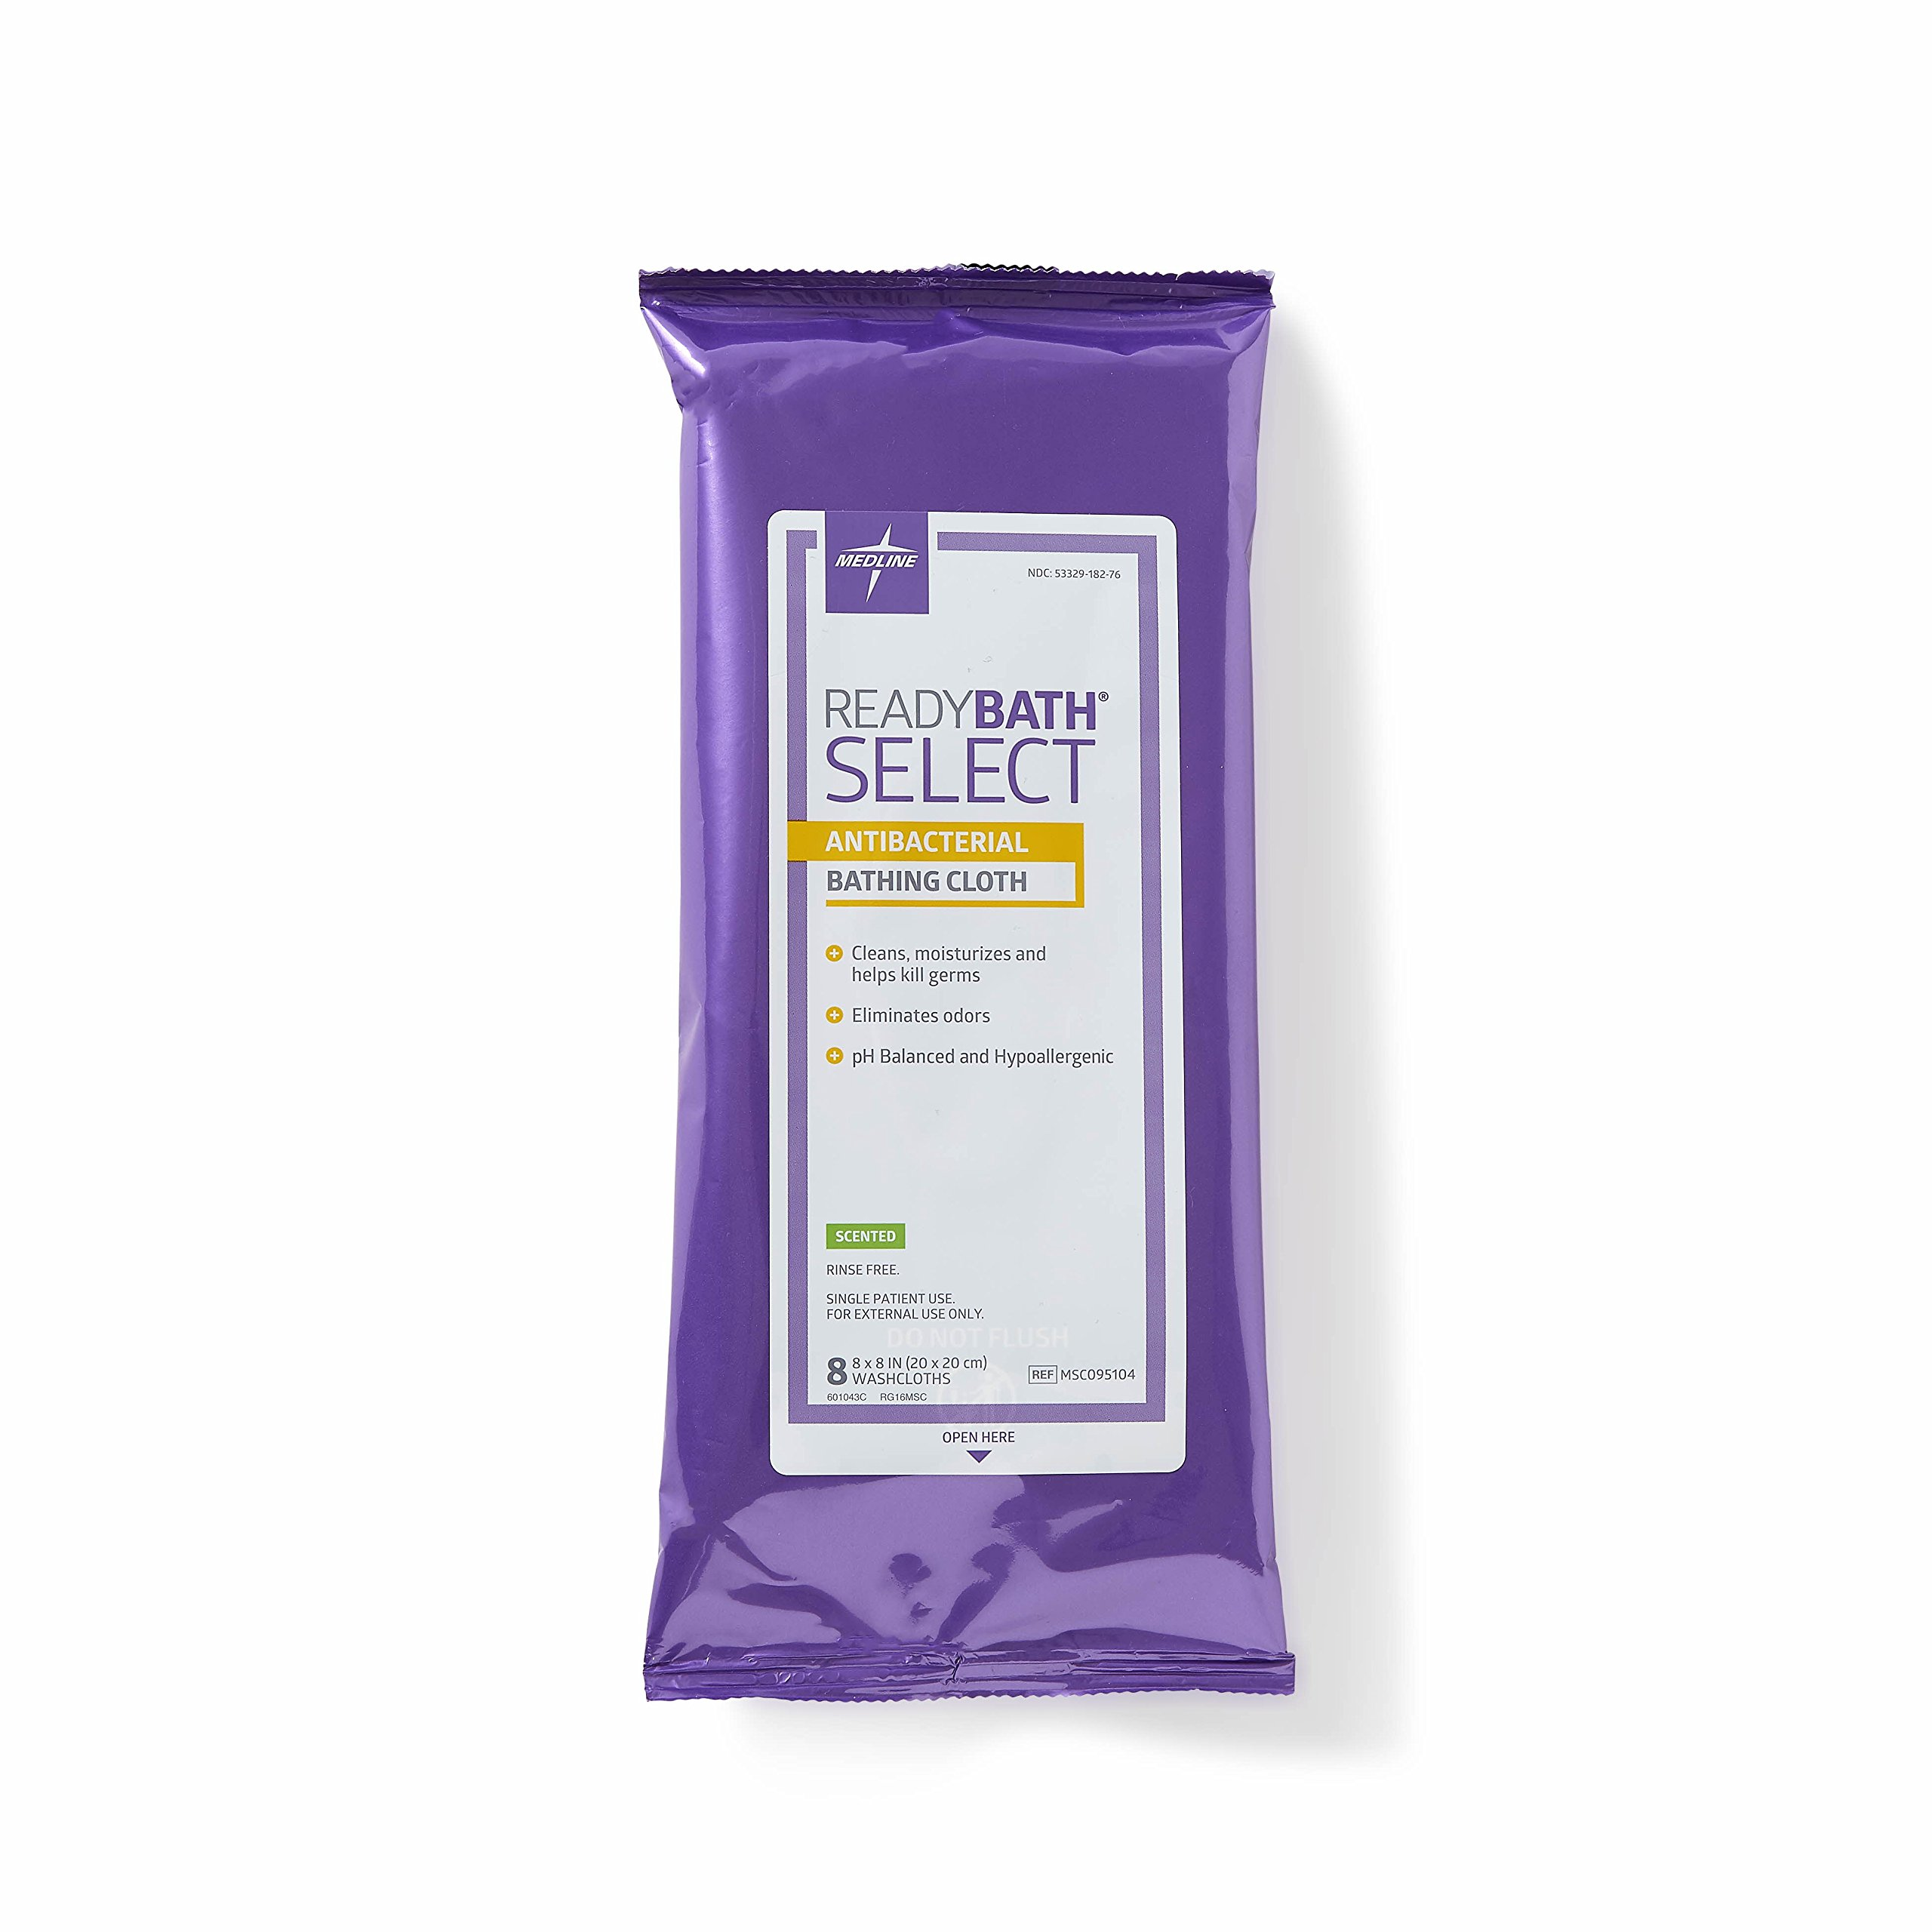 Medline ReadyBath Select Antibacterial Body Cleansing Cloth Wipes, Scented, Medium Weight Wipes (8 Count Pack, 30 Packs)